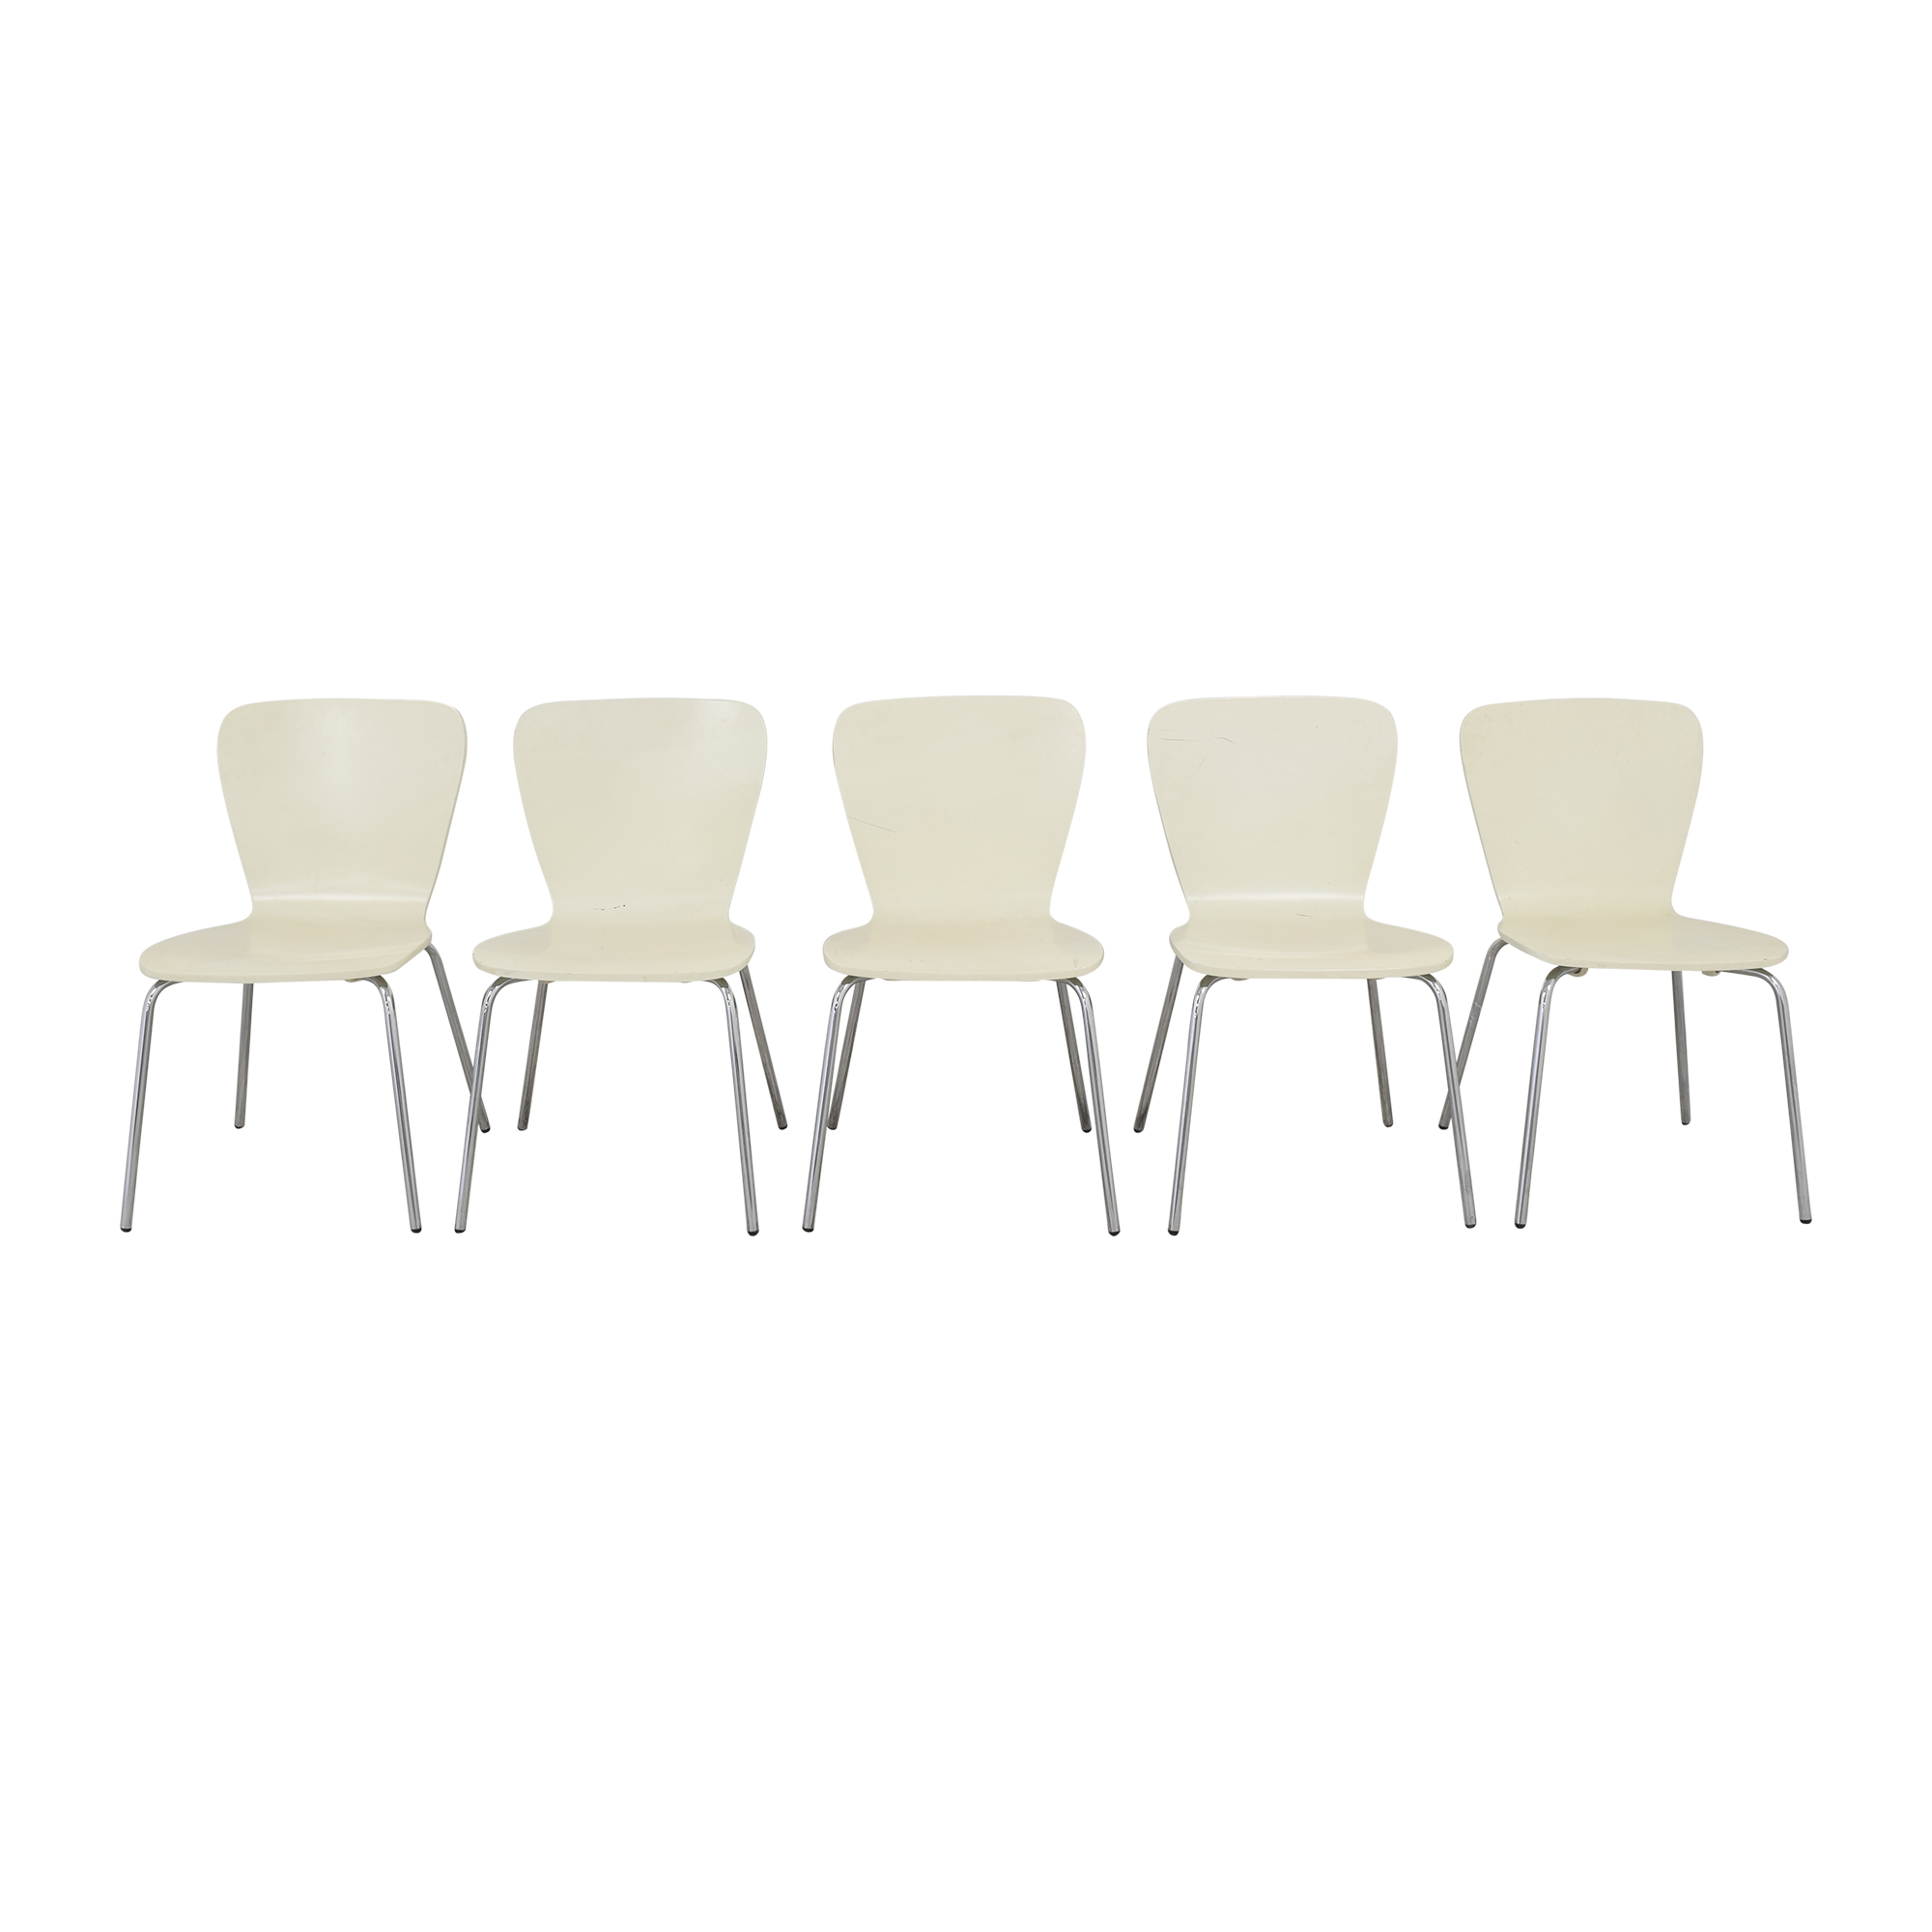 buy Crate & Barrel Felix Side Chairs Crate & Barrel Dining Chairs